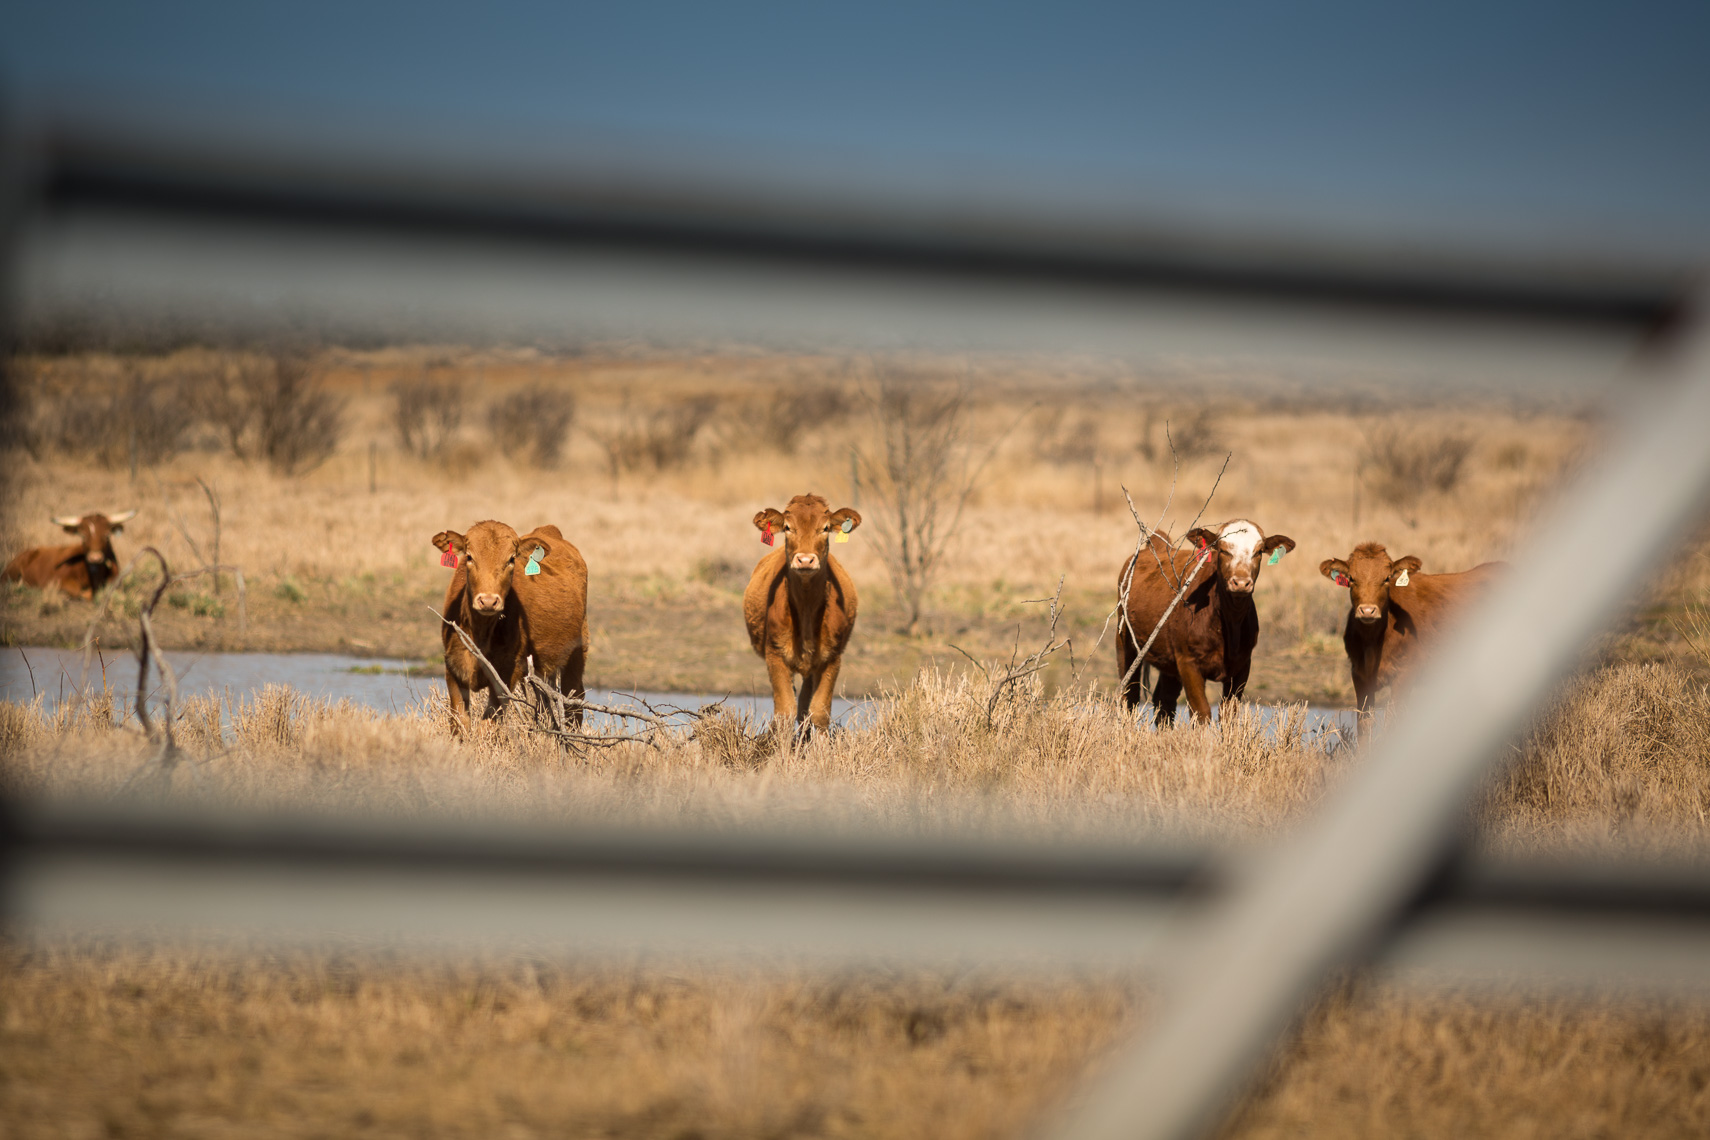 peeler-ranch-cattle-texas-jason-risner-photography-9551